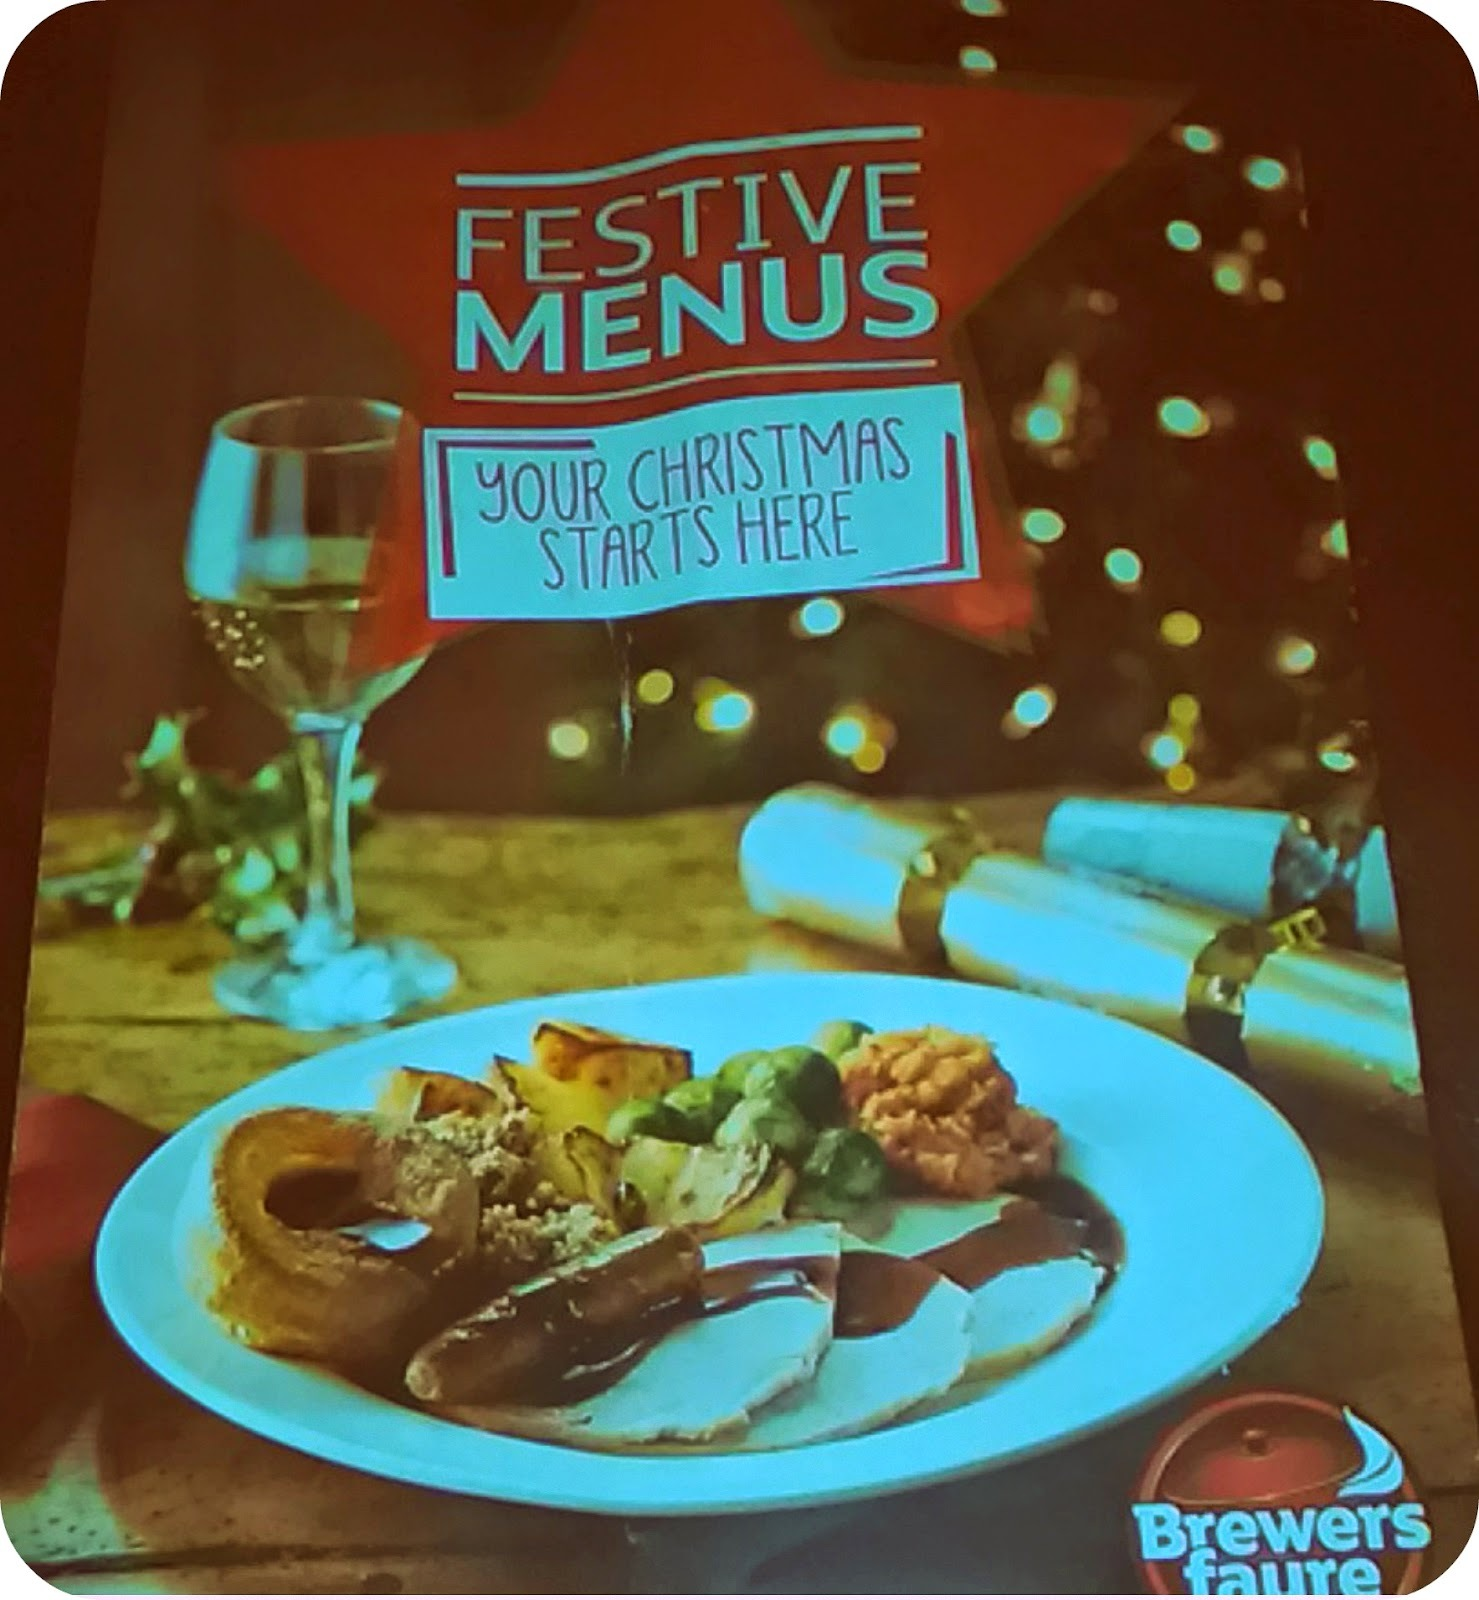 Getting Festive with Brewers Fayre